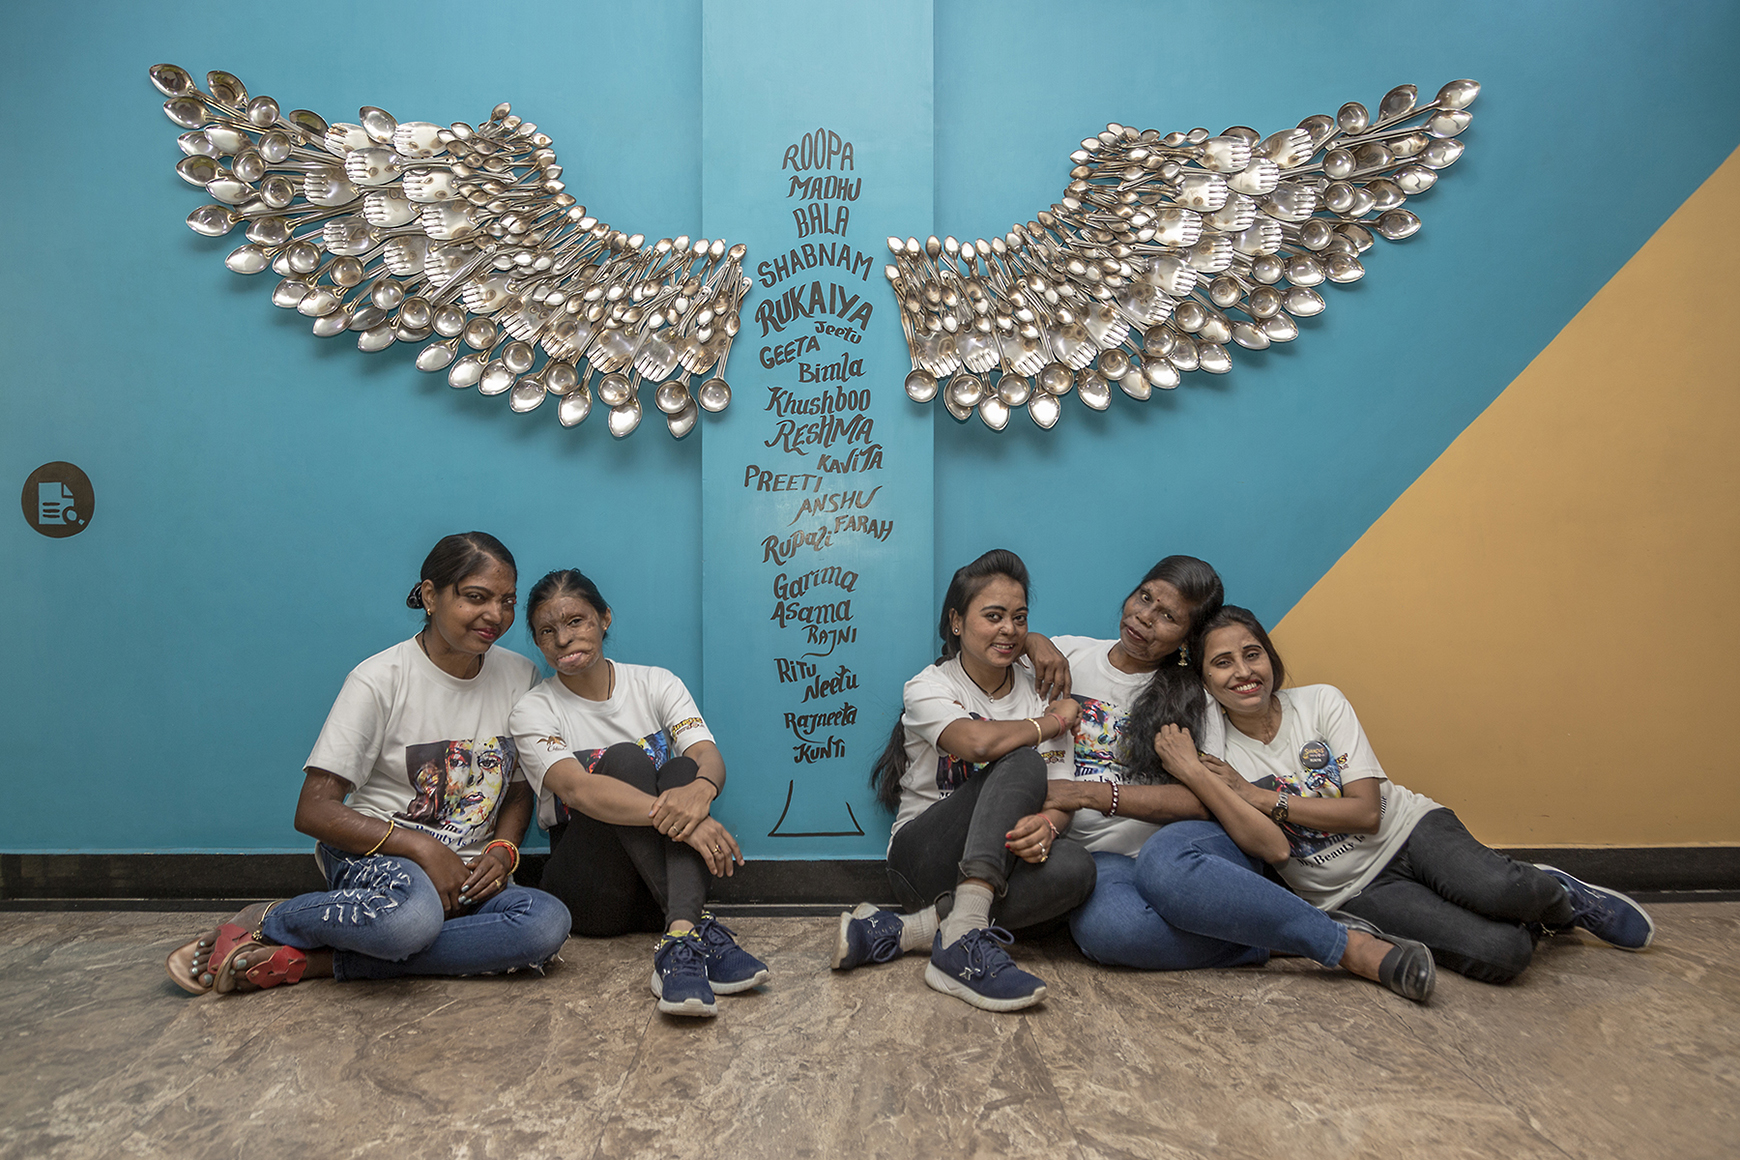 The Sheroes sit in relaxed poses on the floor of the café. Behind and above them, fixed to the sky-blue wall, is a large pair of angel wings constructed out of shiny stainless steel spoons and ladles. The wings are on either side of a vertical column on which names of acid attack survivors are painted in black in different sizes in both upper and lower case. They run from top to bottom of the column in this order: Roopa, Madhu, Bala, Shabnam, Rukaiya, Jeetu, Geeta, Bimla, Khushboo, Reshma, Kavita, Preeti, Anshu, Farah, Rupali, Garima, Asma, Rajni, Ritu, Neetu, Rajneeta, Kunti.